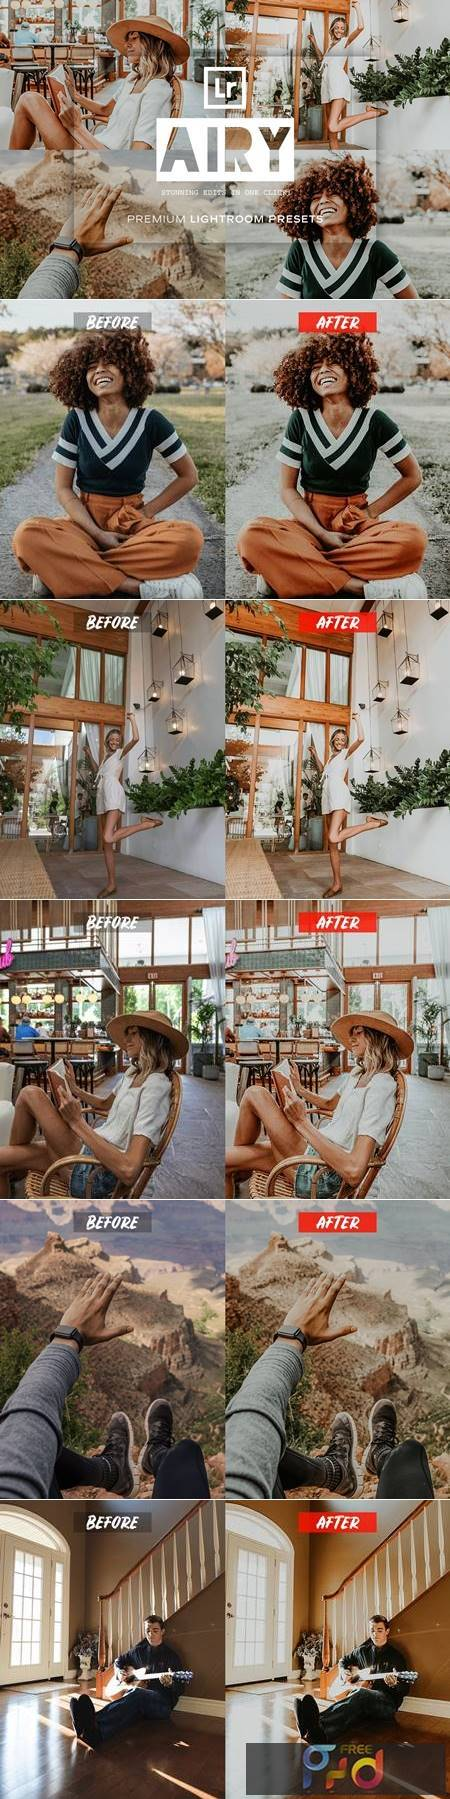 Airy Lightroom Presets 5119089 1